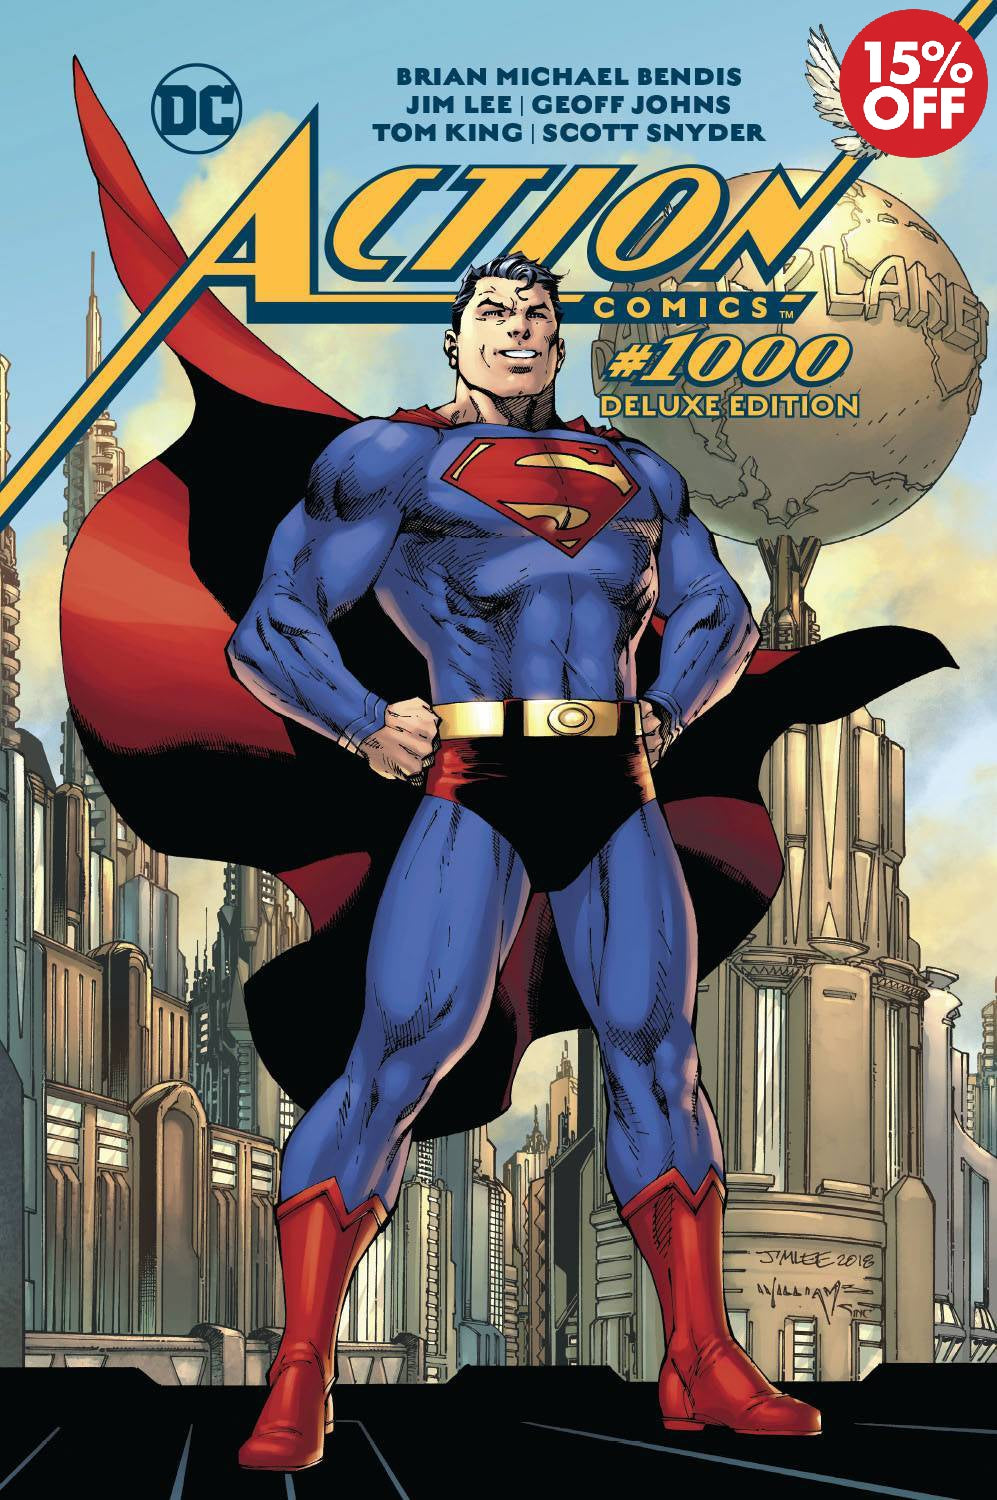 ACTION COMICS #1000 THE DELUXE EDITION HC  9781401285975